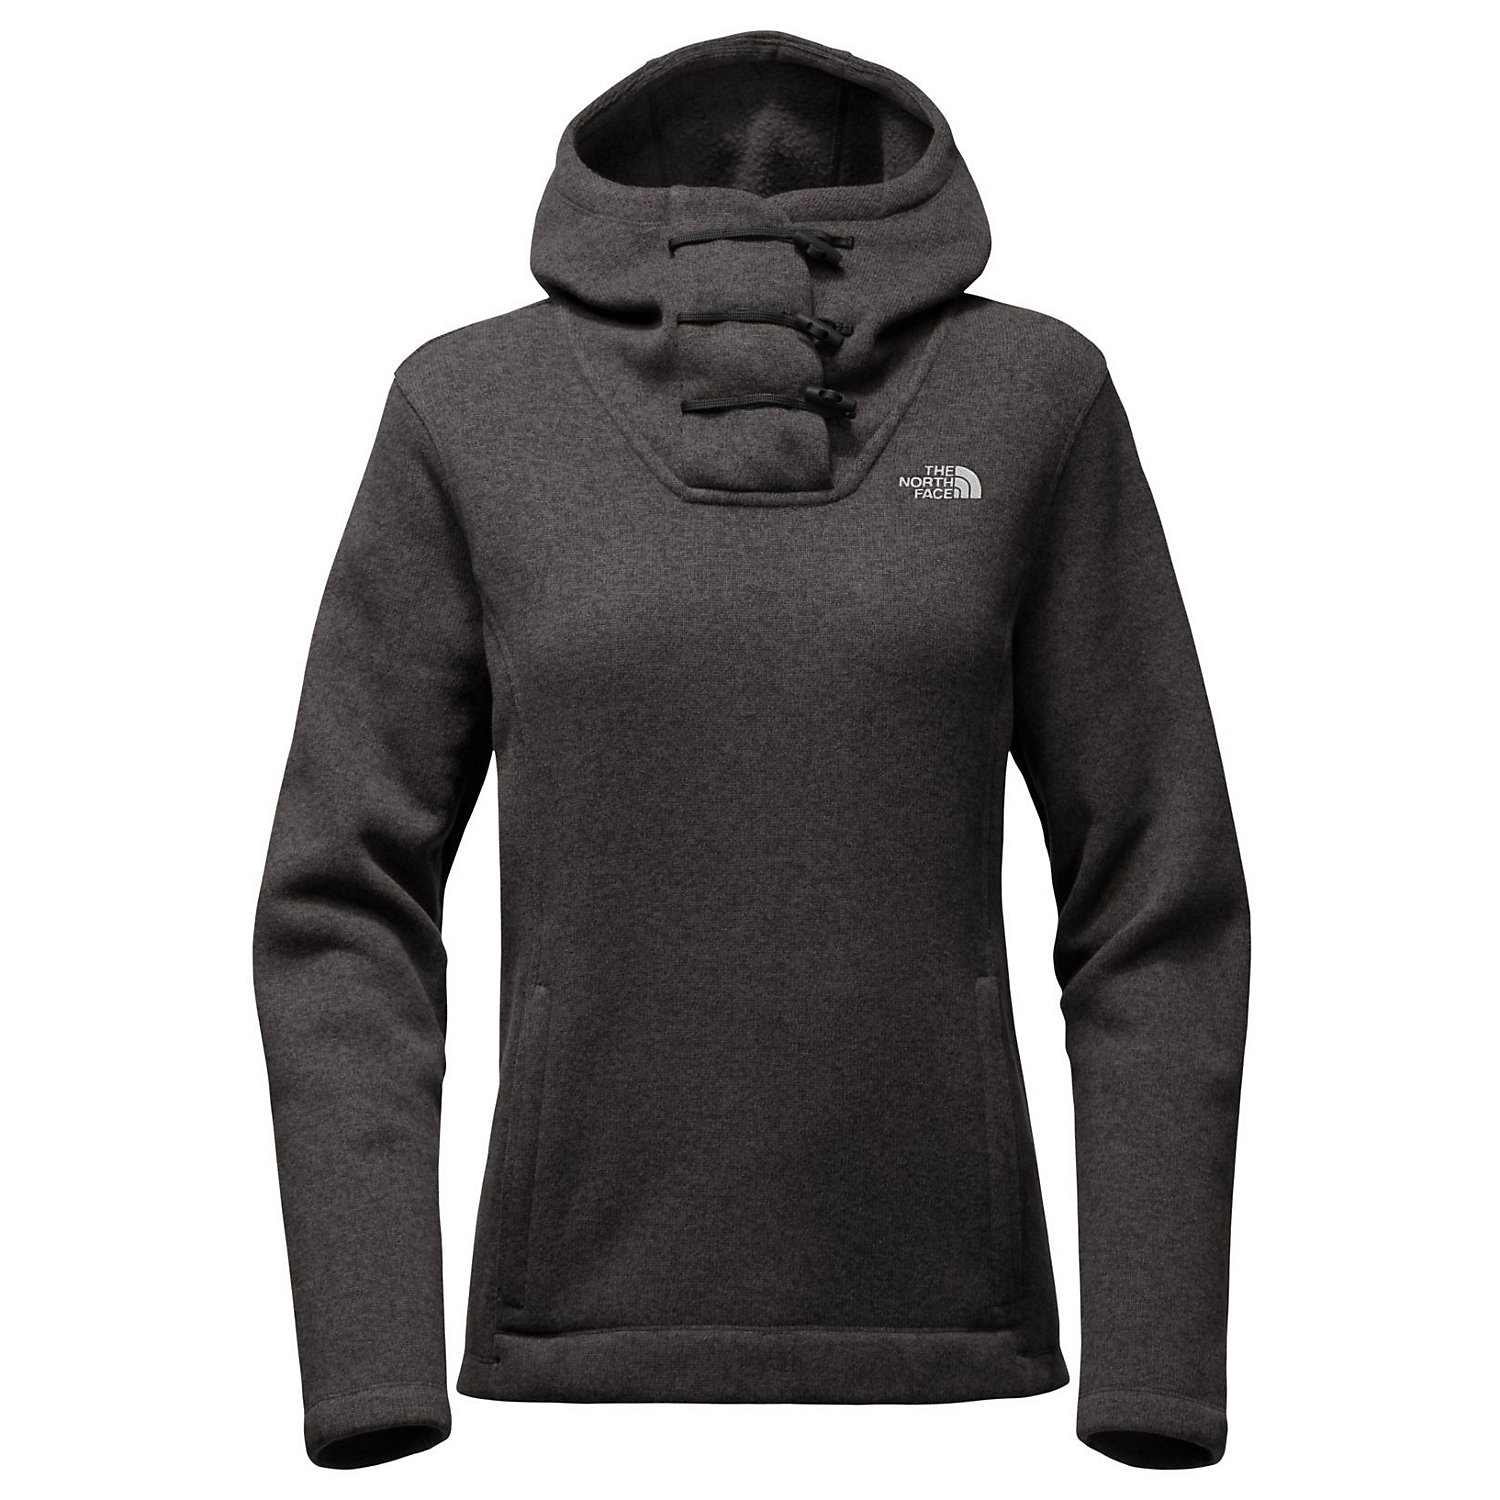 The North Face Womens Crescent Hood Pullover Size:Medium Color:Grey Brand New